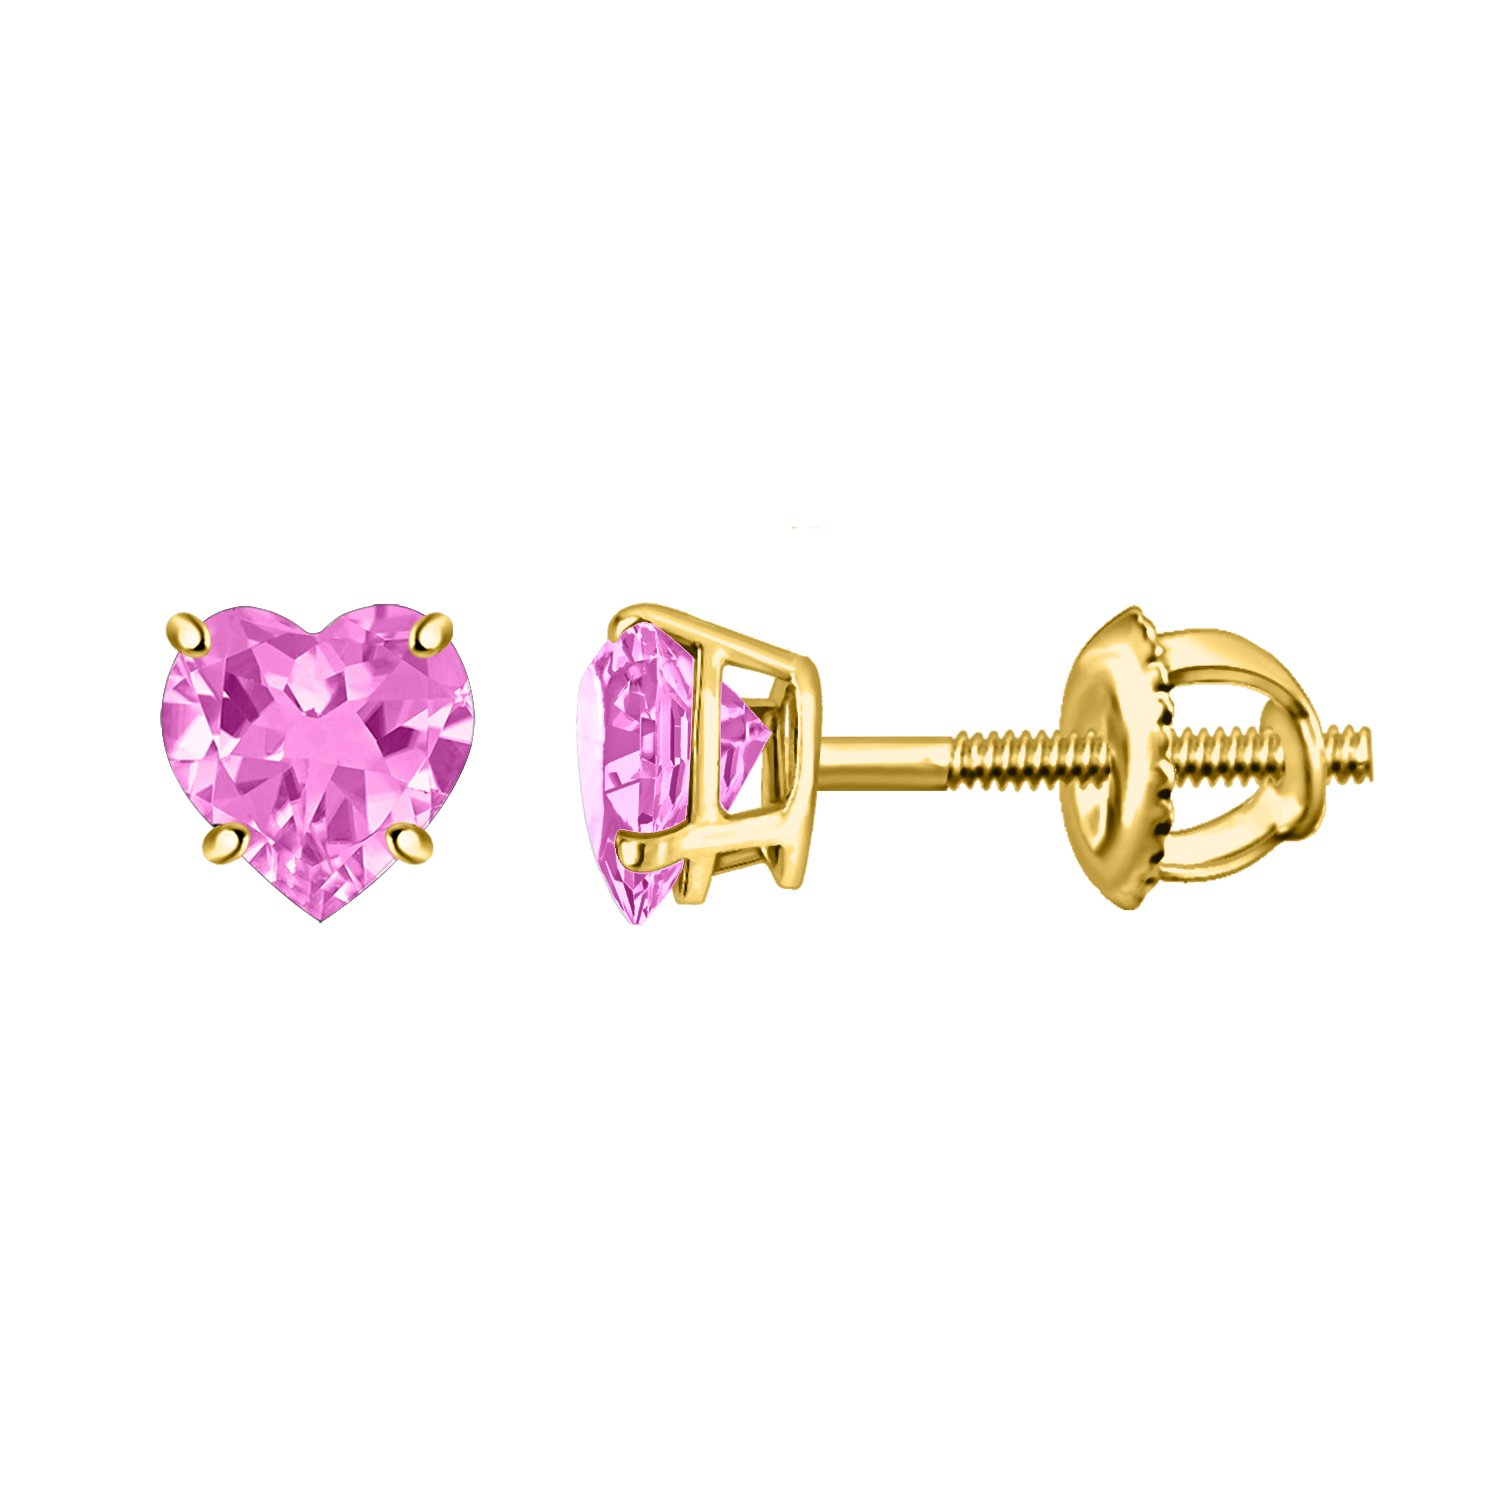 Fabulous Collection Pink Amethyst Heart Shape Solitaire Earring In 925 Silver By Silver Dew